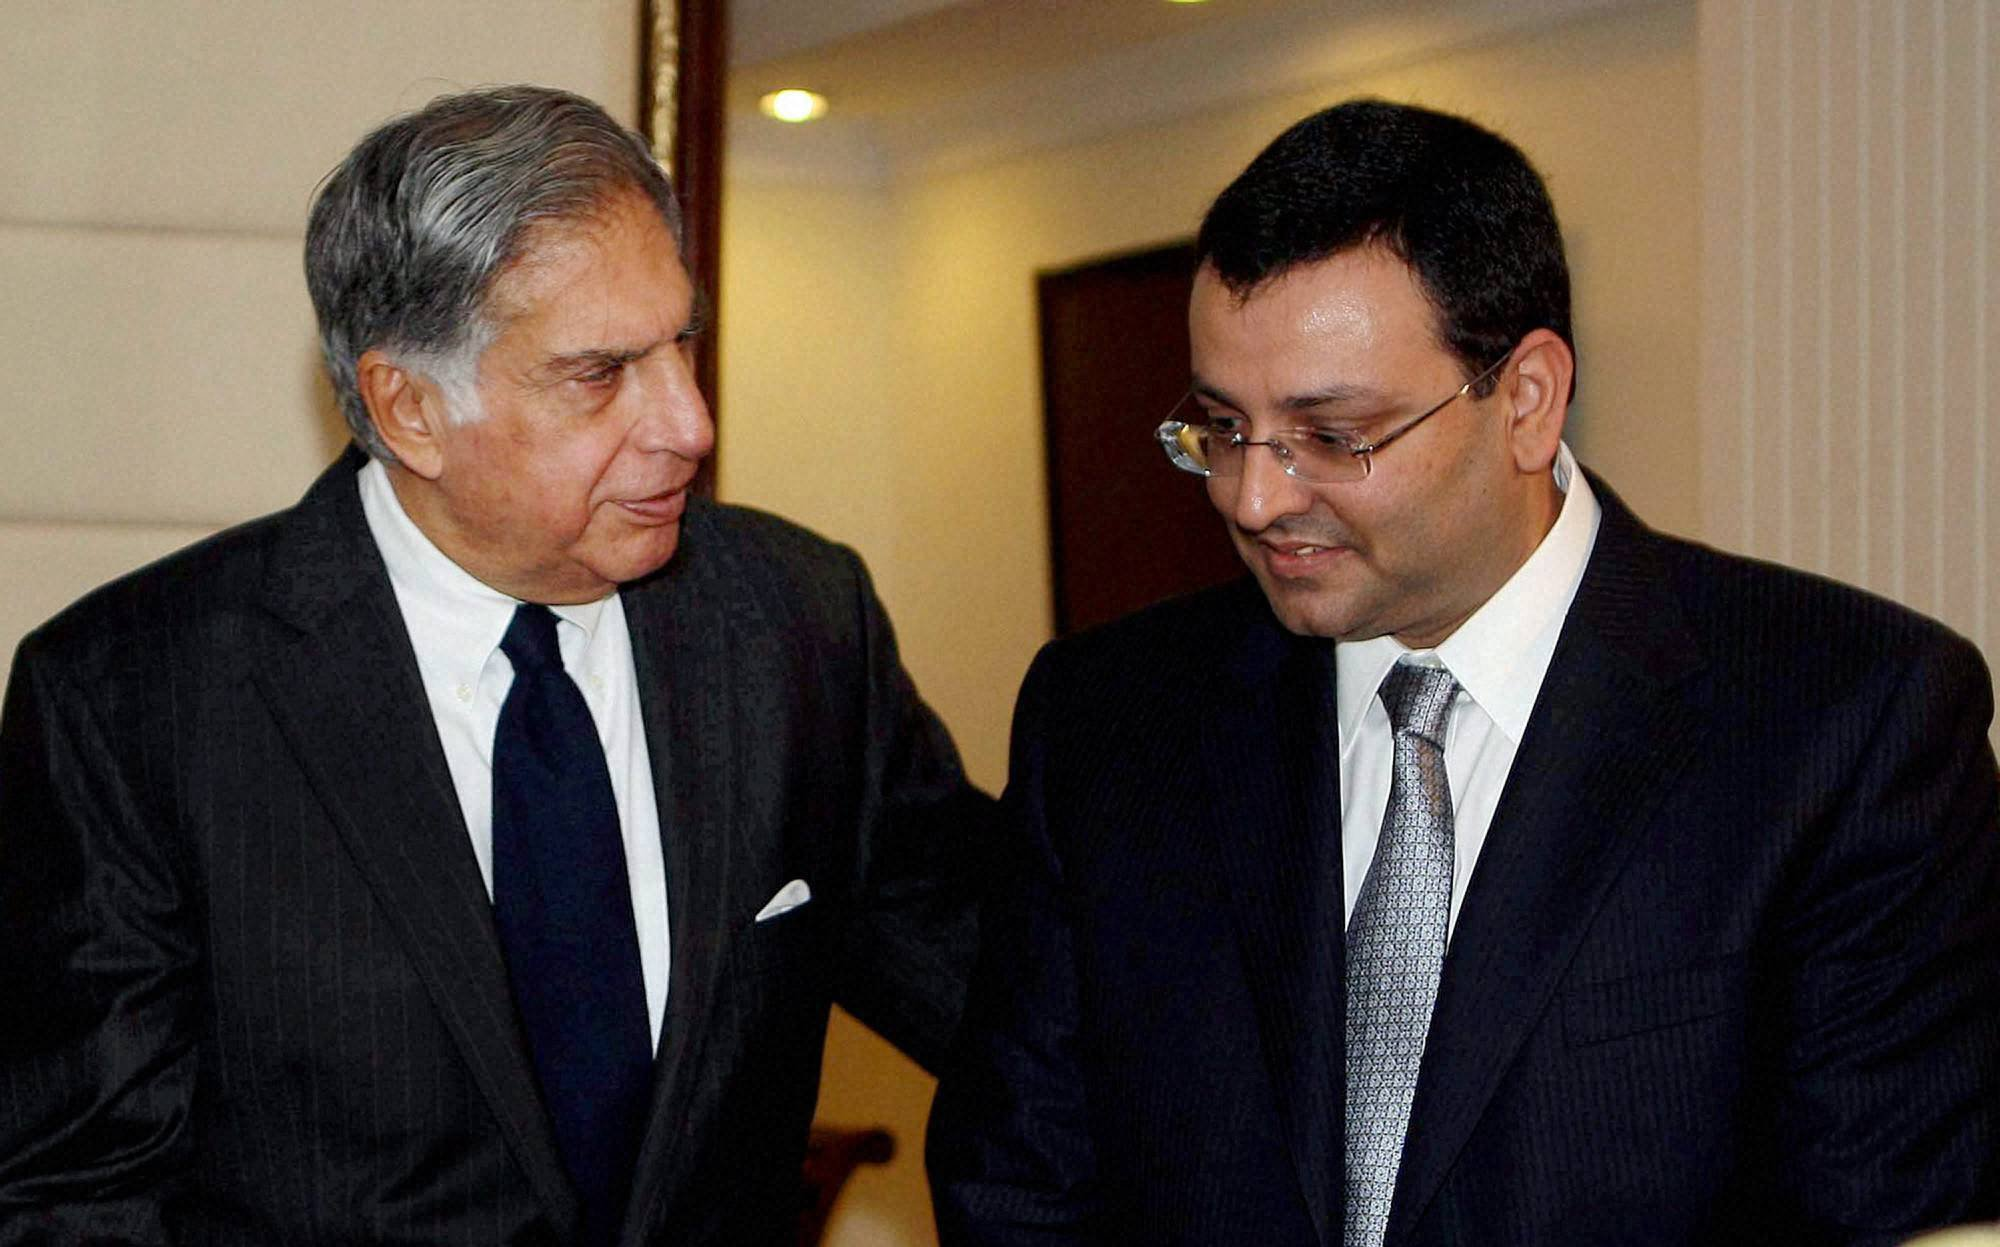 Next generation of Shapoorji Pallonji Mistry family steps into company's boardroom.